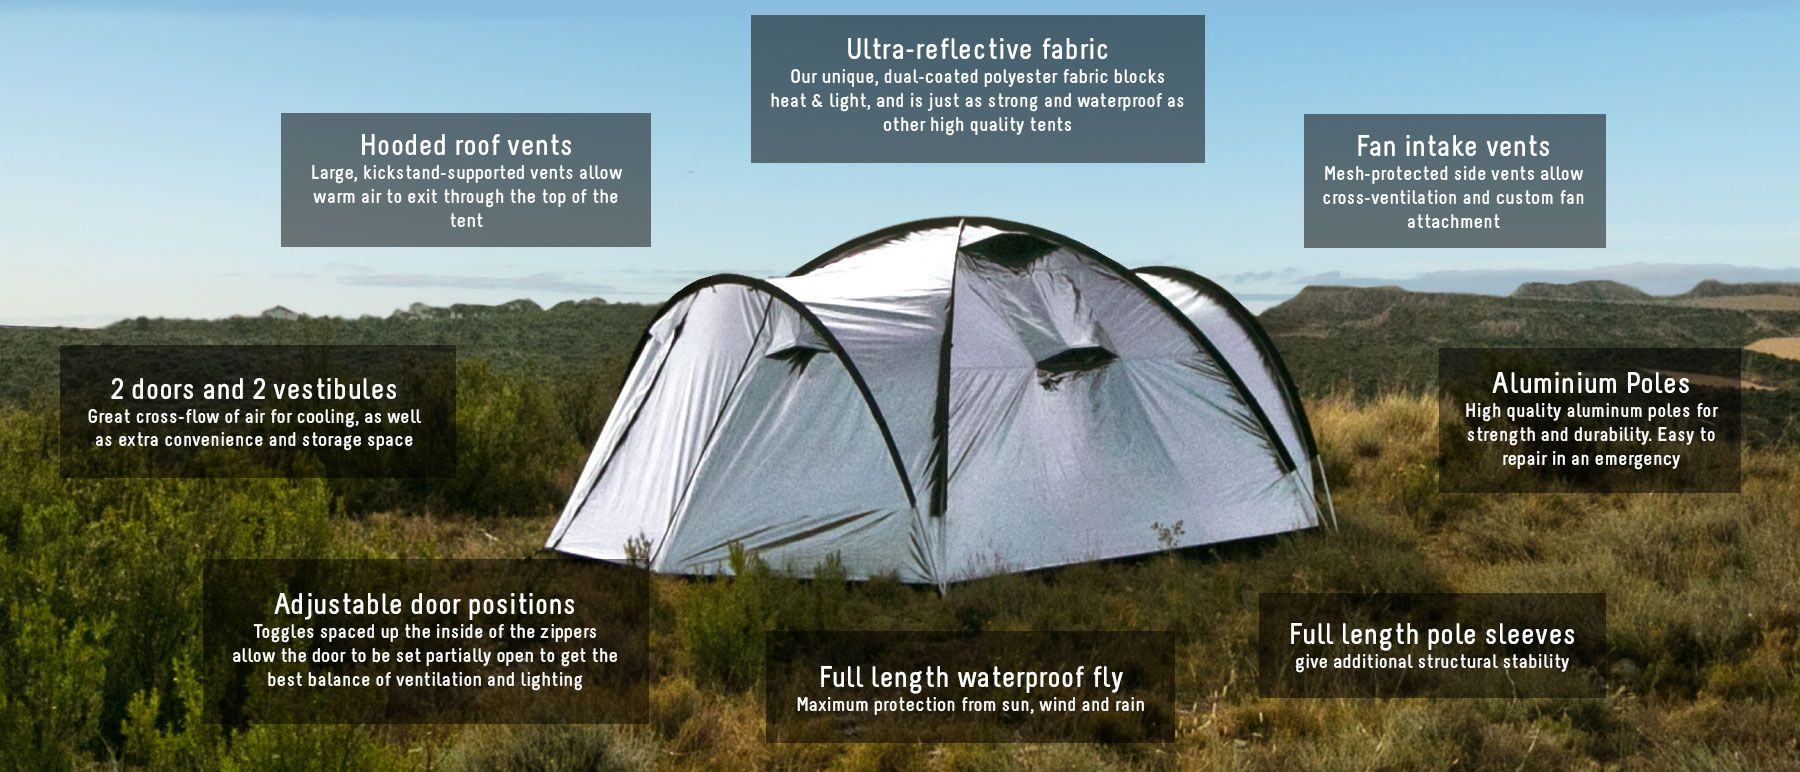 Siesta4 Heat u0026 Light Blocking Tent with Built-in Fans by Outback Logic u2014 Kickstarter | Needful things | Pinterest | Tents and C&ing : tent toggles - memphite.com